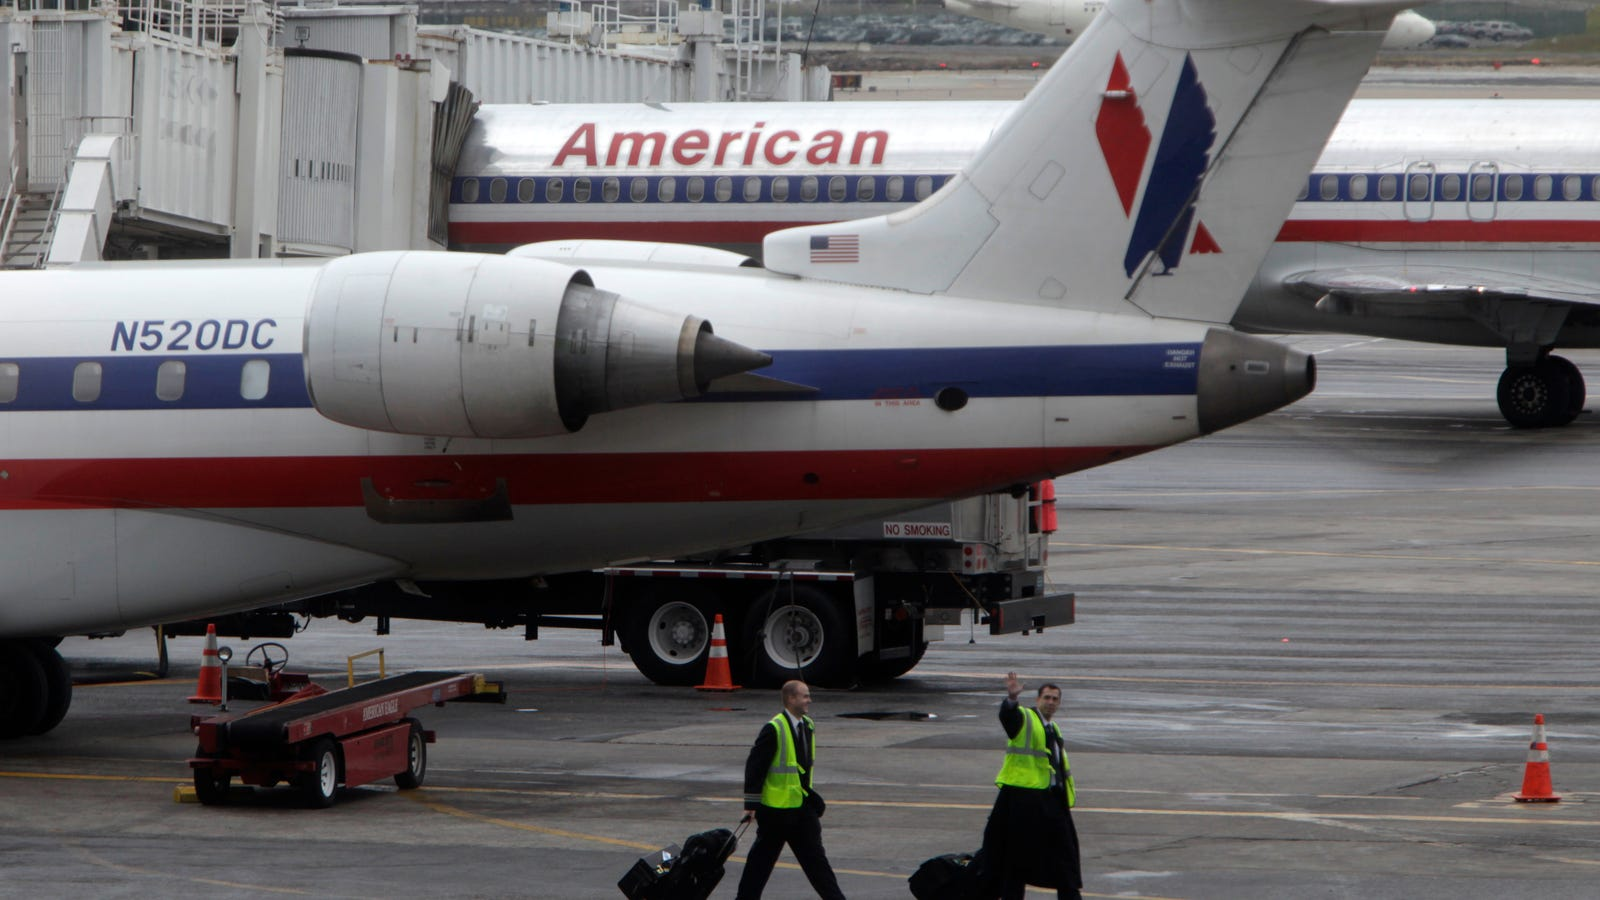 Nightmare Turbulence Injures 10 On American Airlines